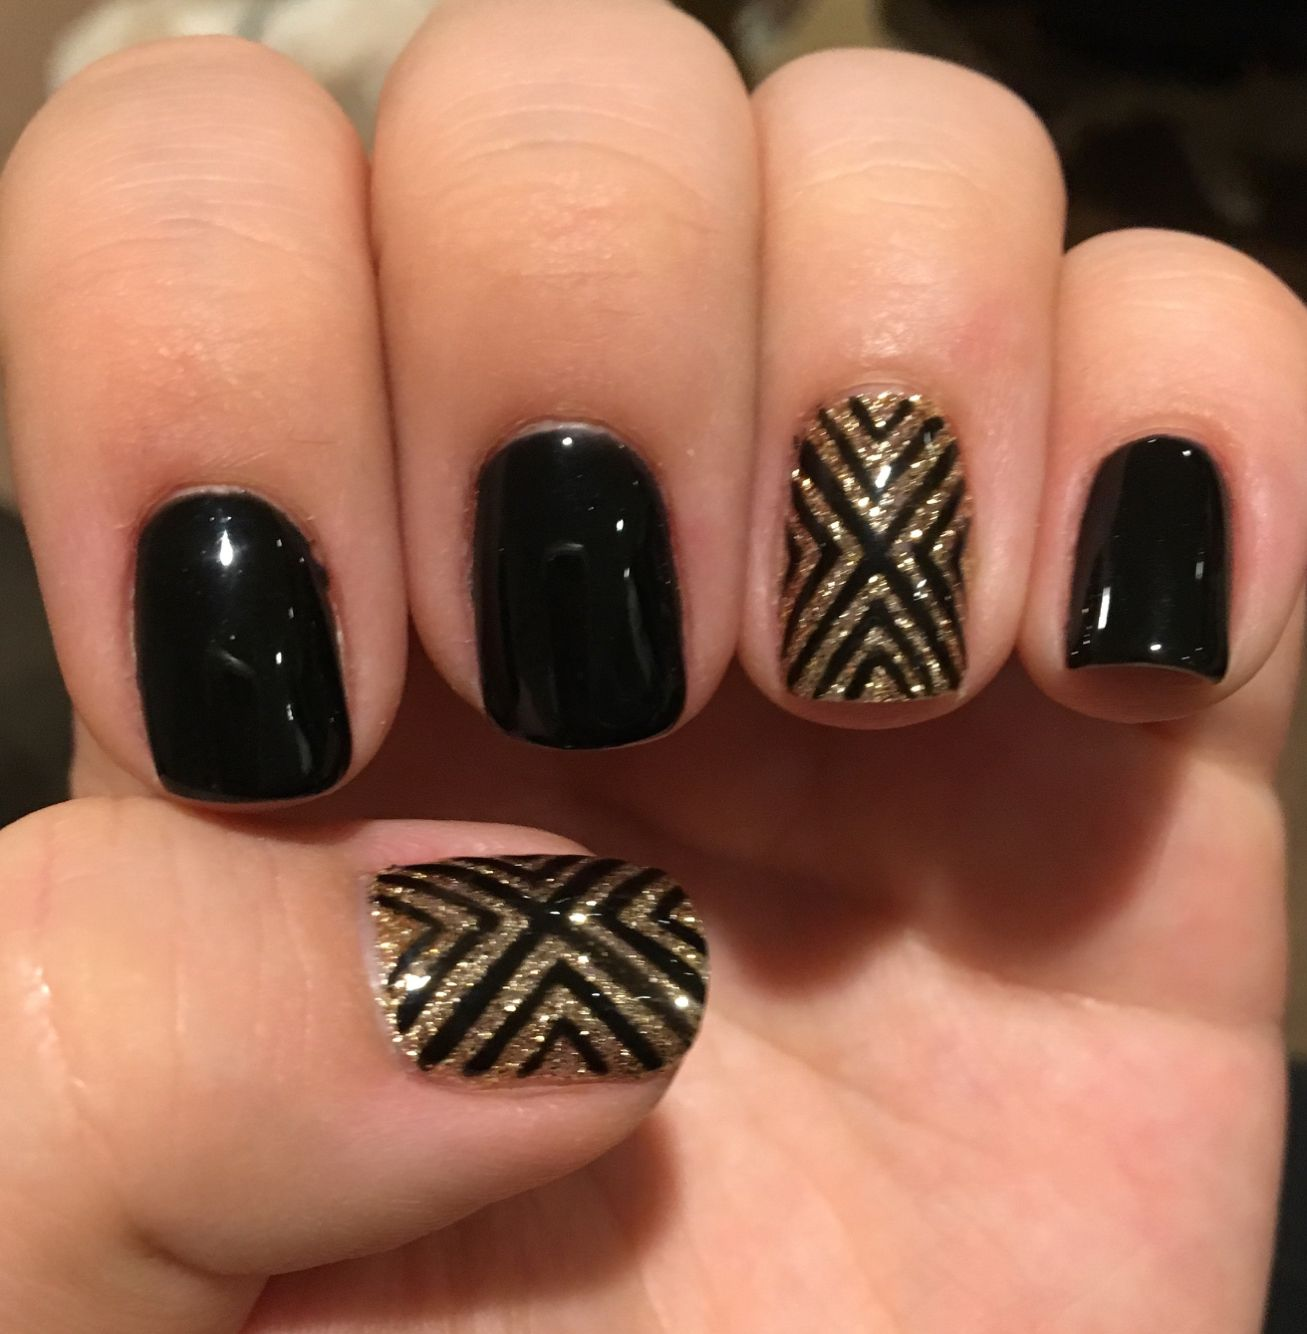 Pattern nail art designs fancy nail art for prom simple nail art lines - Black Gold Nails By Andrea De La Mer Salon